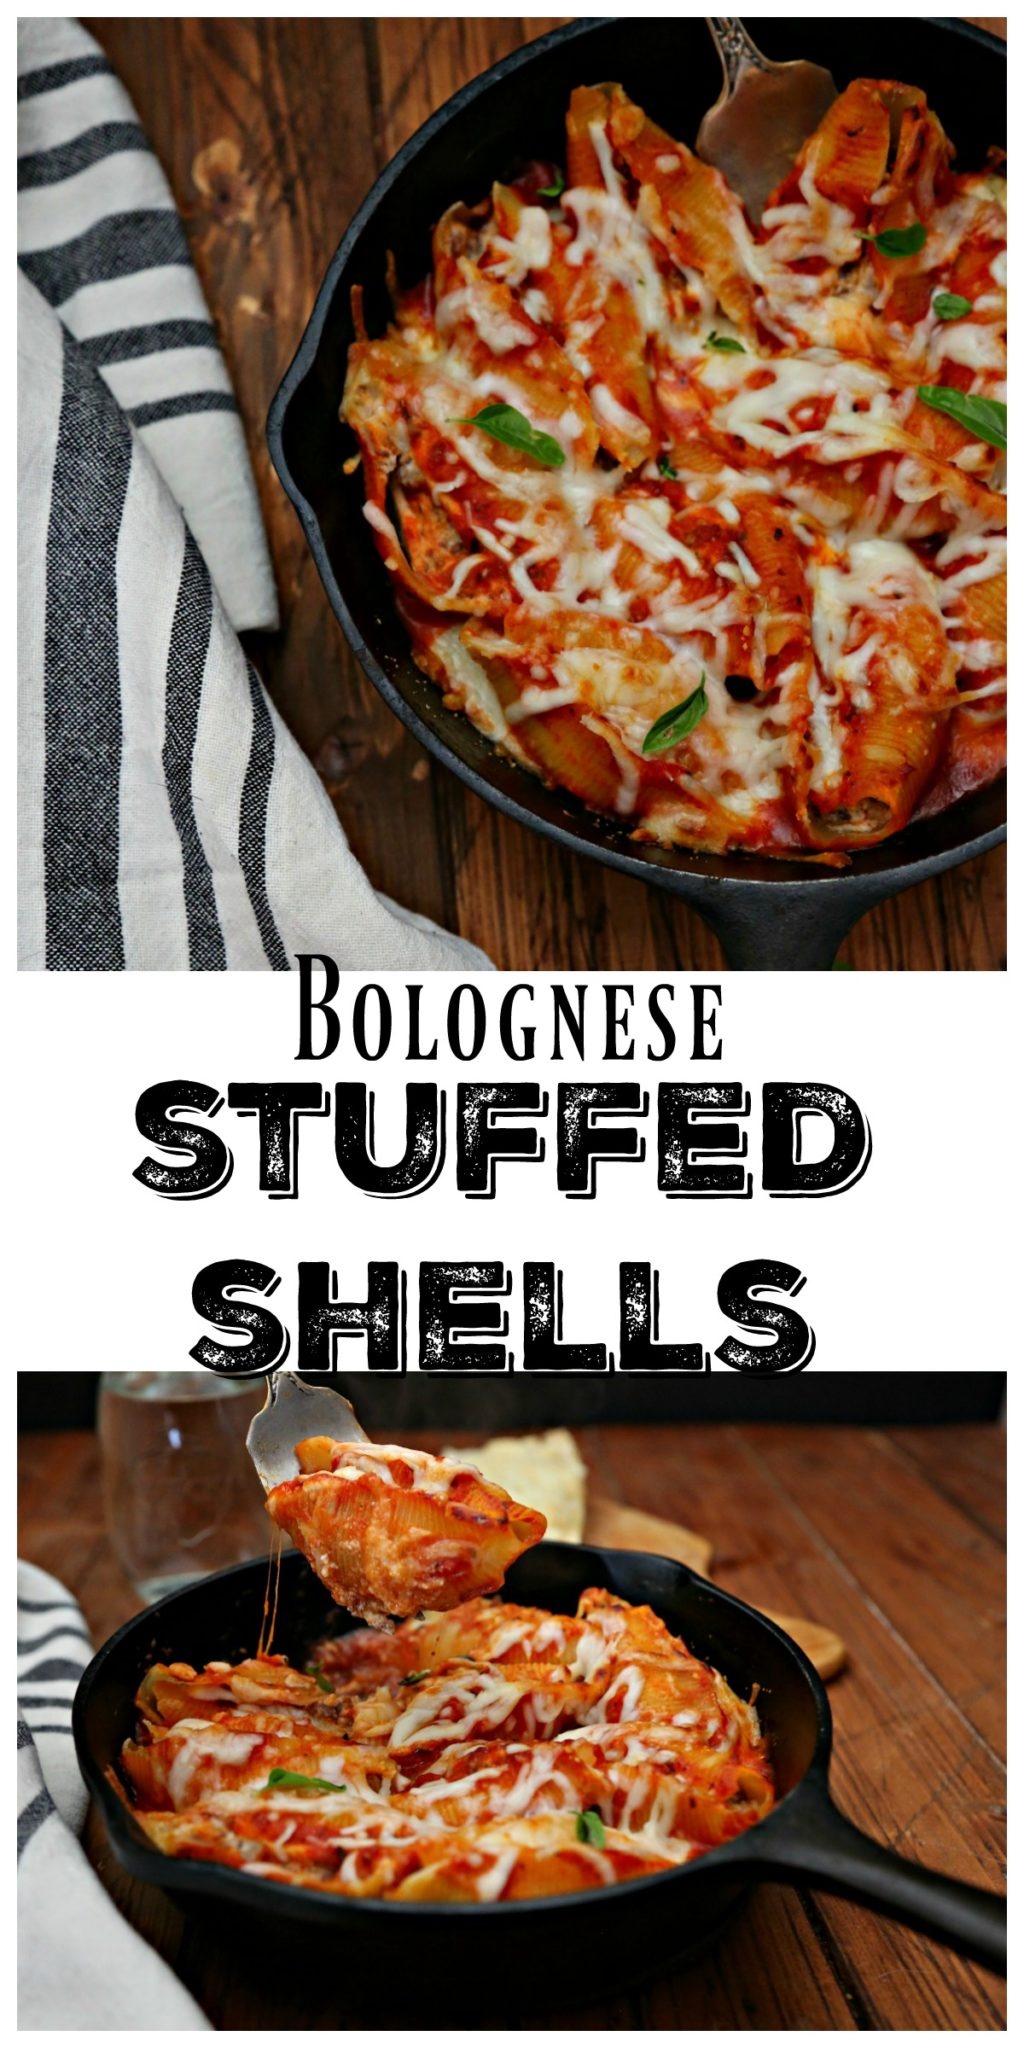 Just as tasty as a Lasagna without all the extra work. Bolognese Stuffed Shells are the perfect make ahead comforting meal that your entire family will love #stuffedshells #pasta #bolognese #meatstuffedpasta #bakedpasta